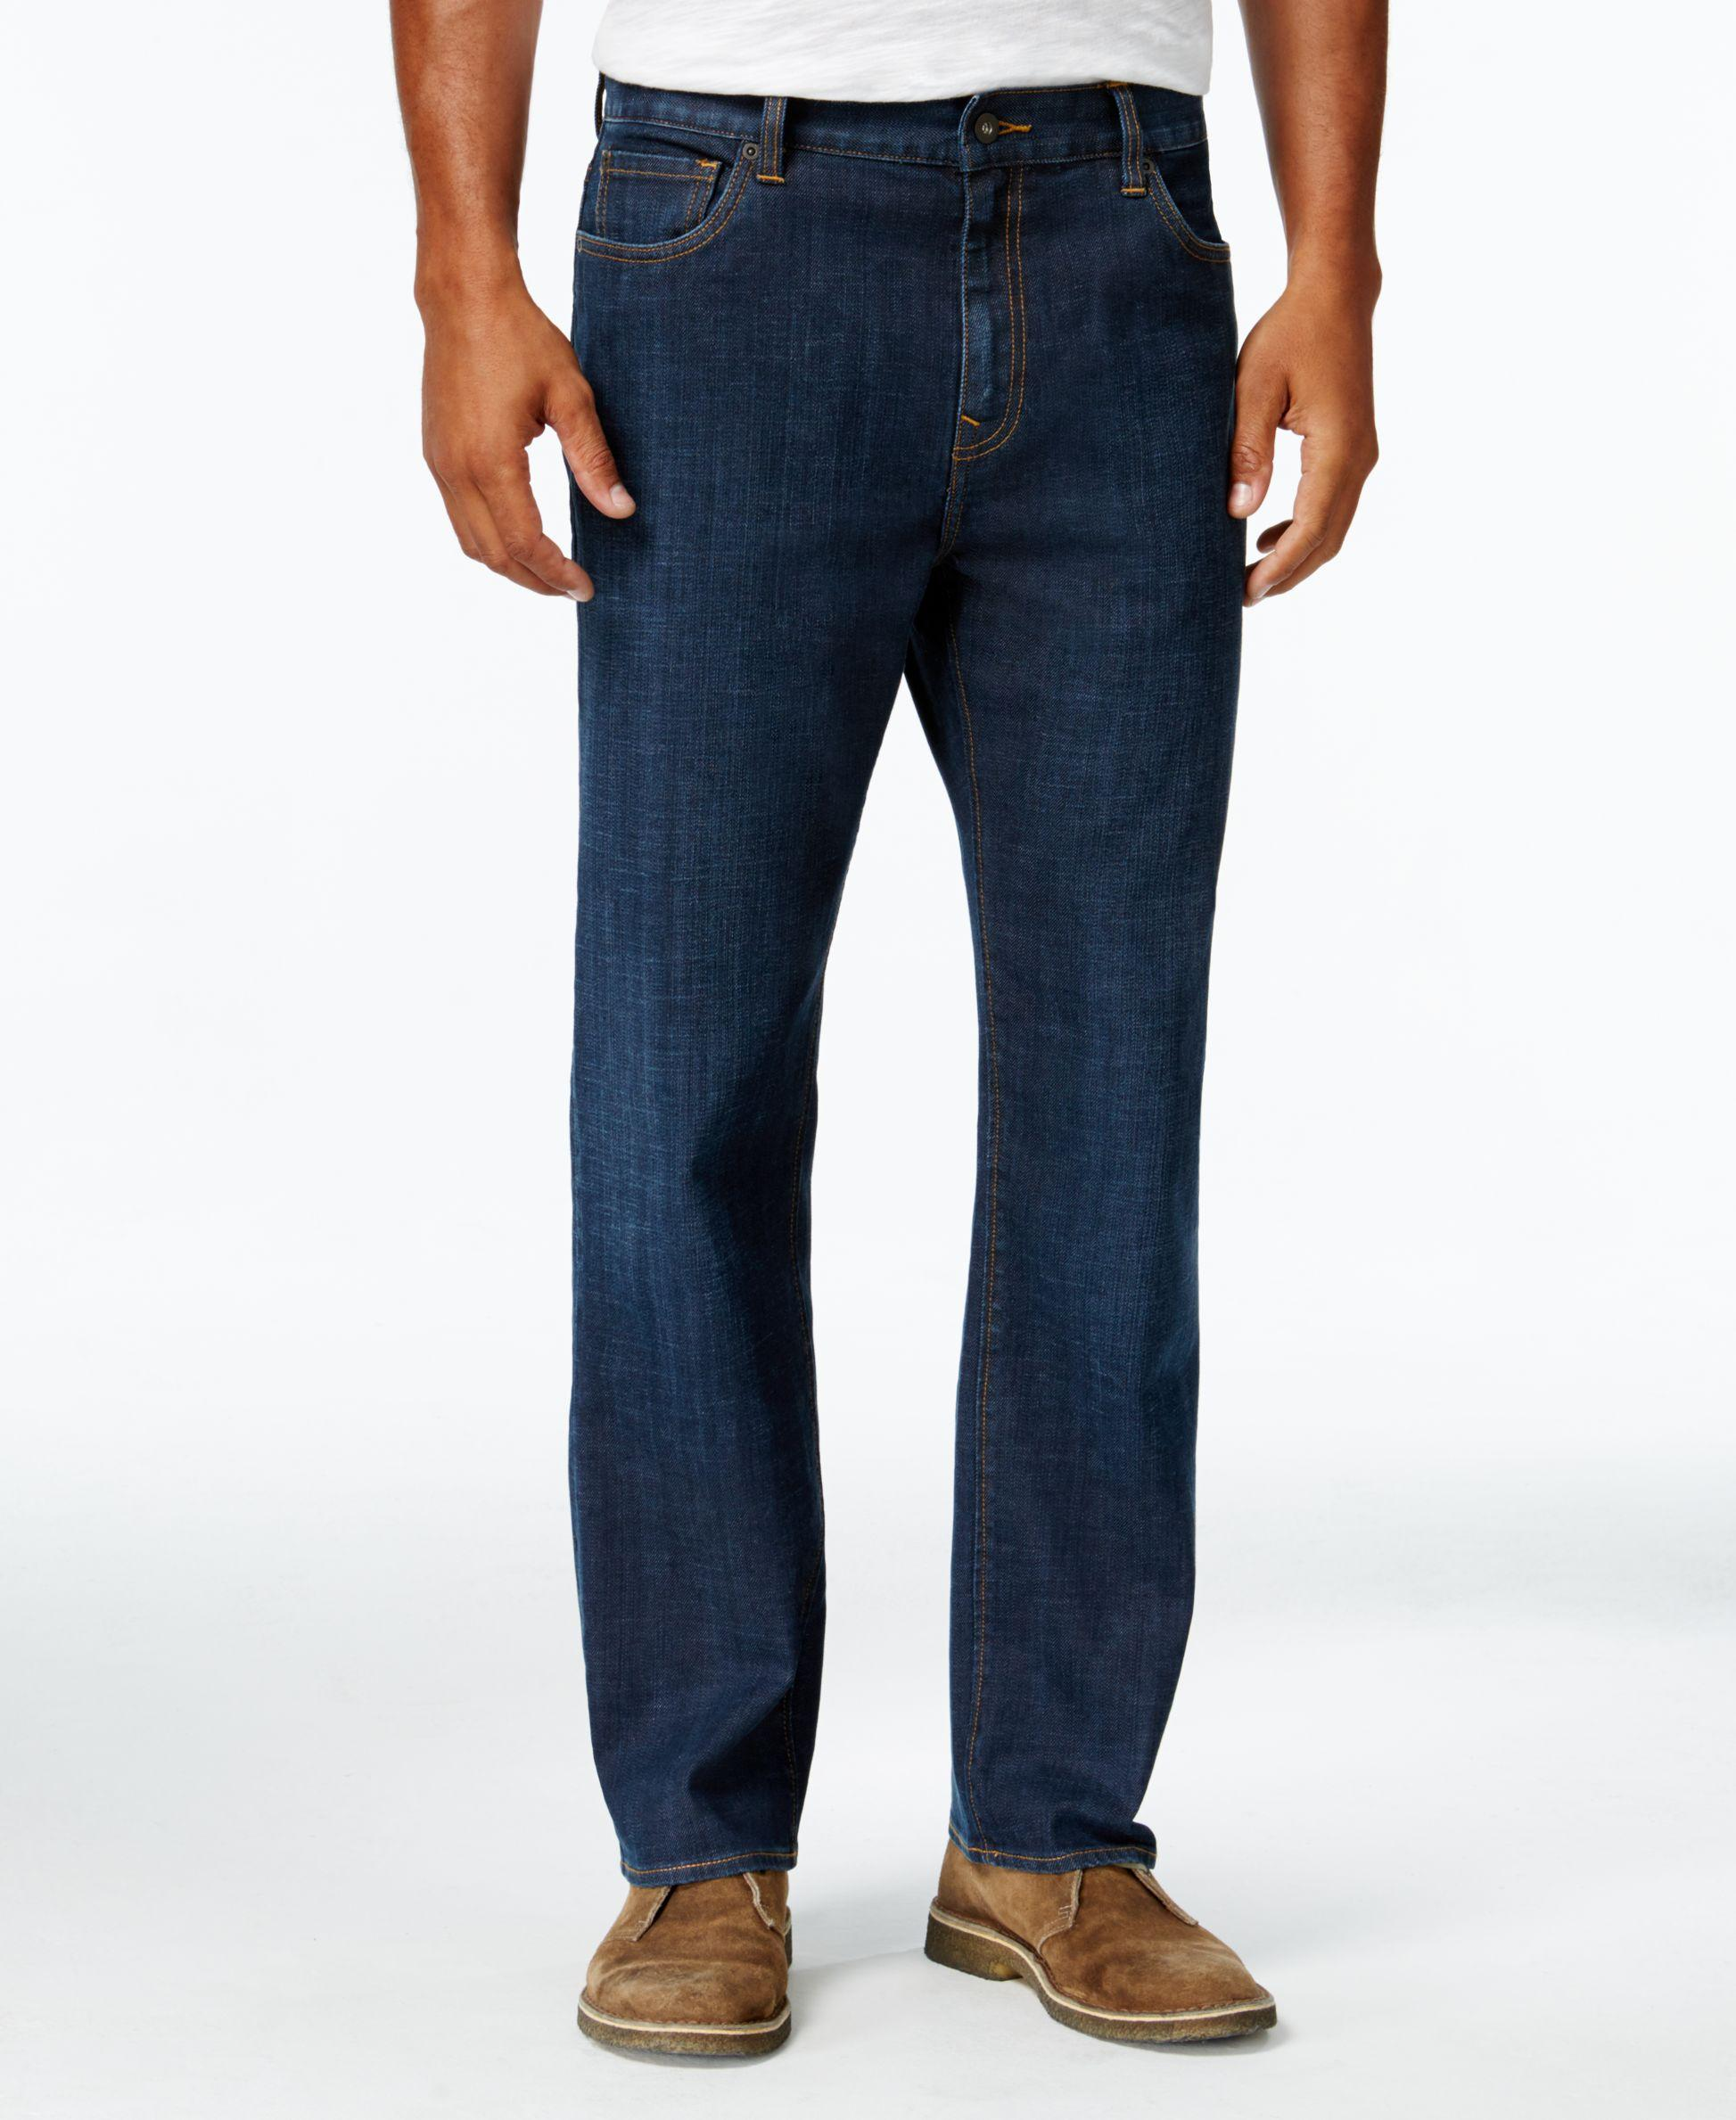 Men's 38 inseam jeans in cool styles. These men's 38